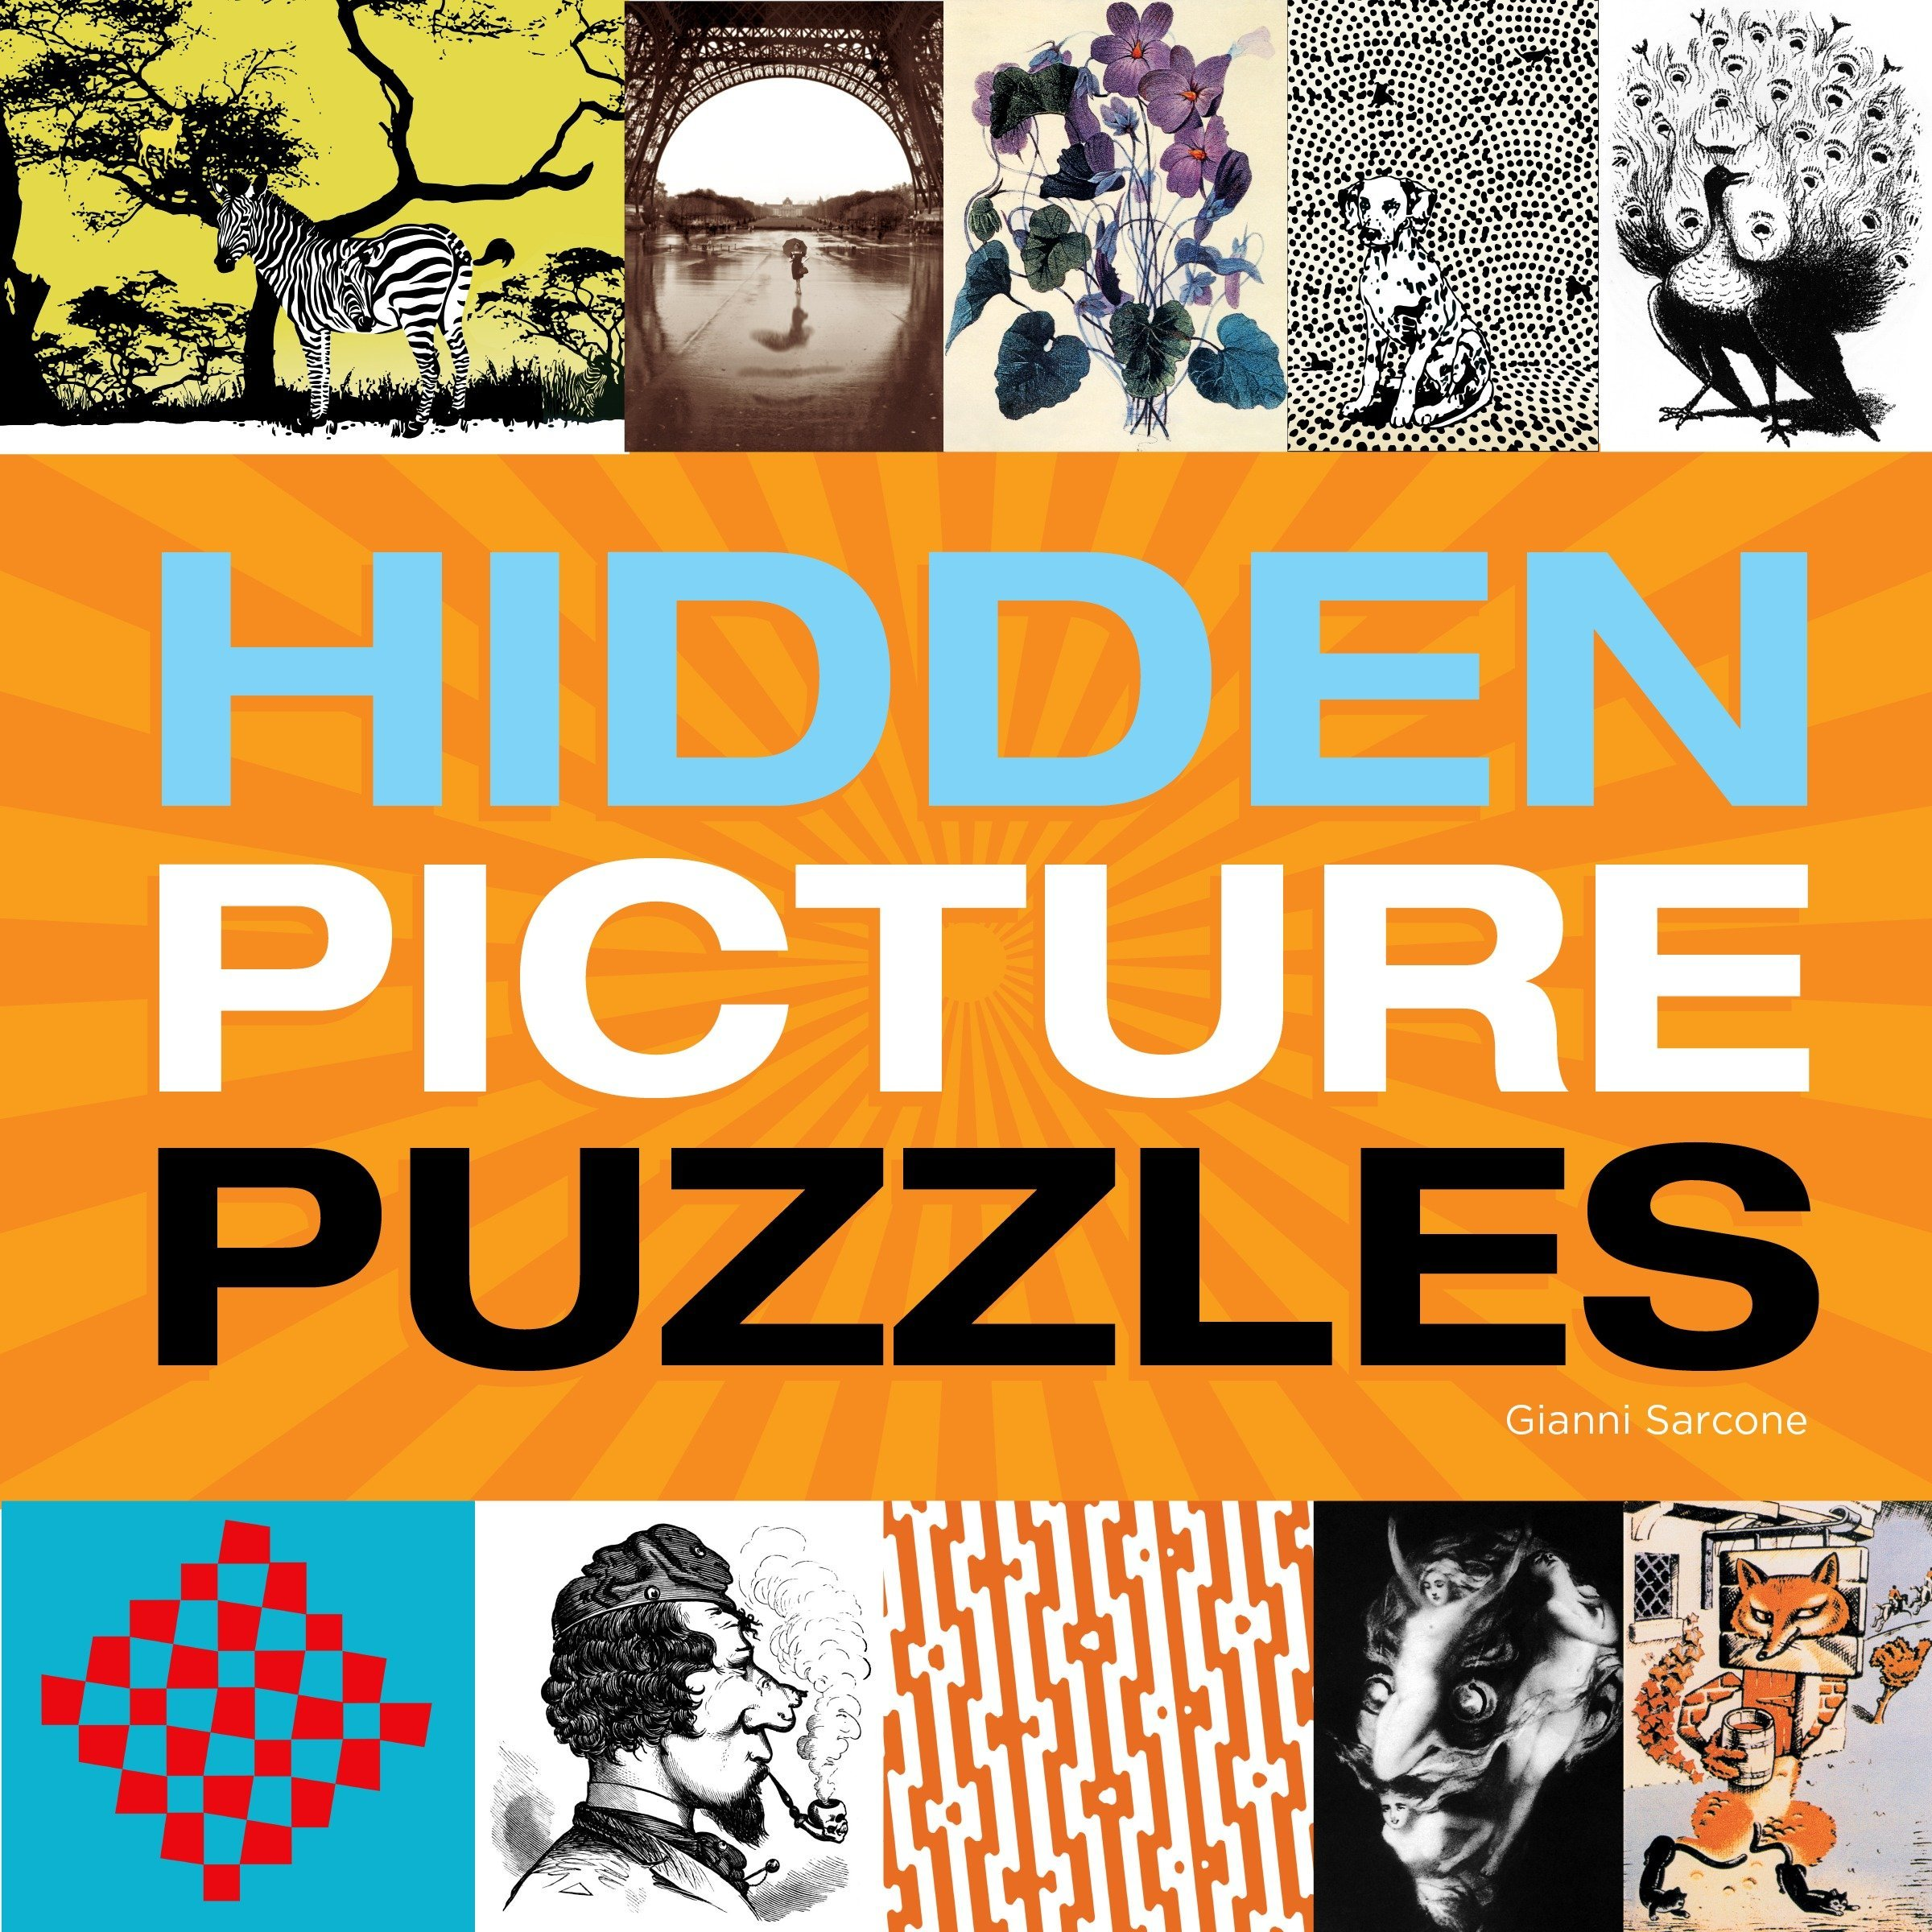 Hidden Picture Puzzles Paperback – September 2, 2014 Gianni Sarcone Imagine 1623540380 Optical Illusions